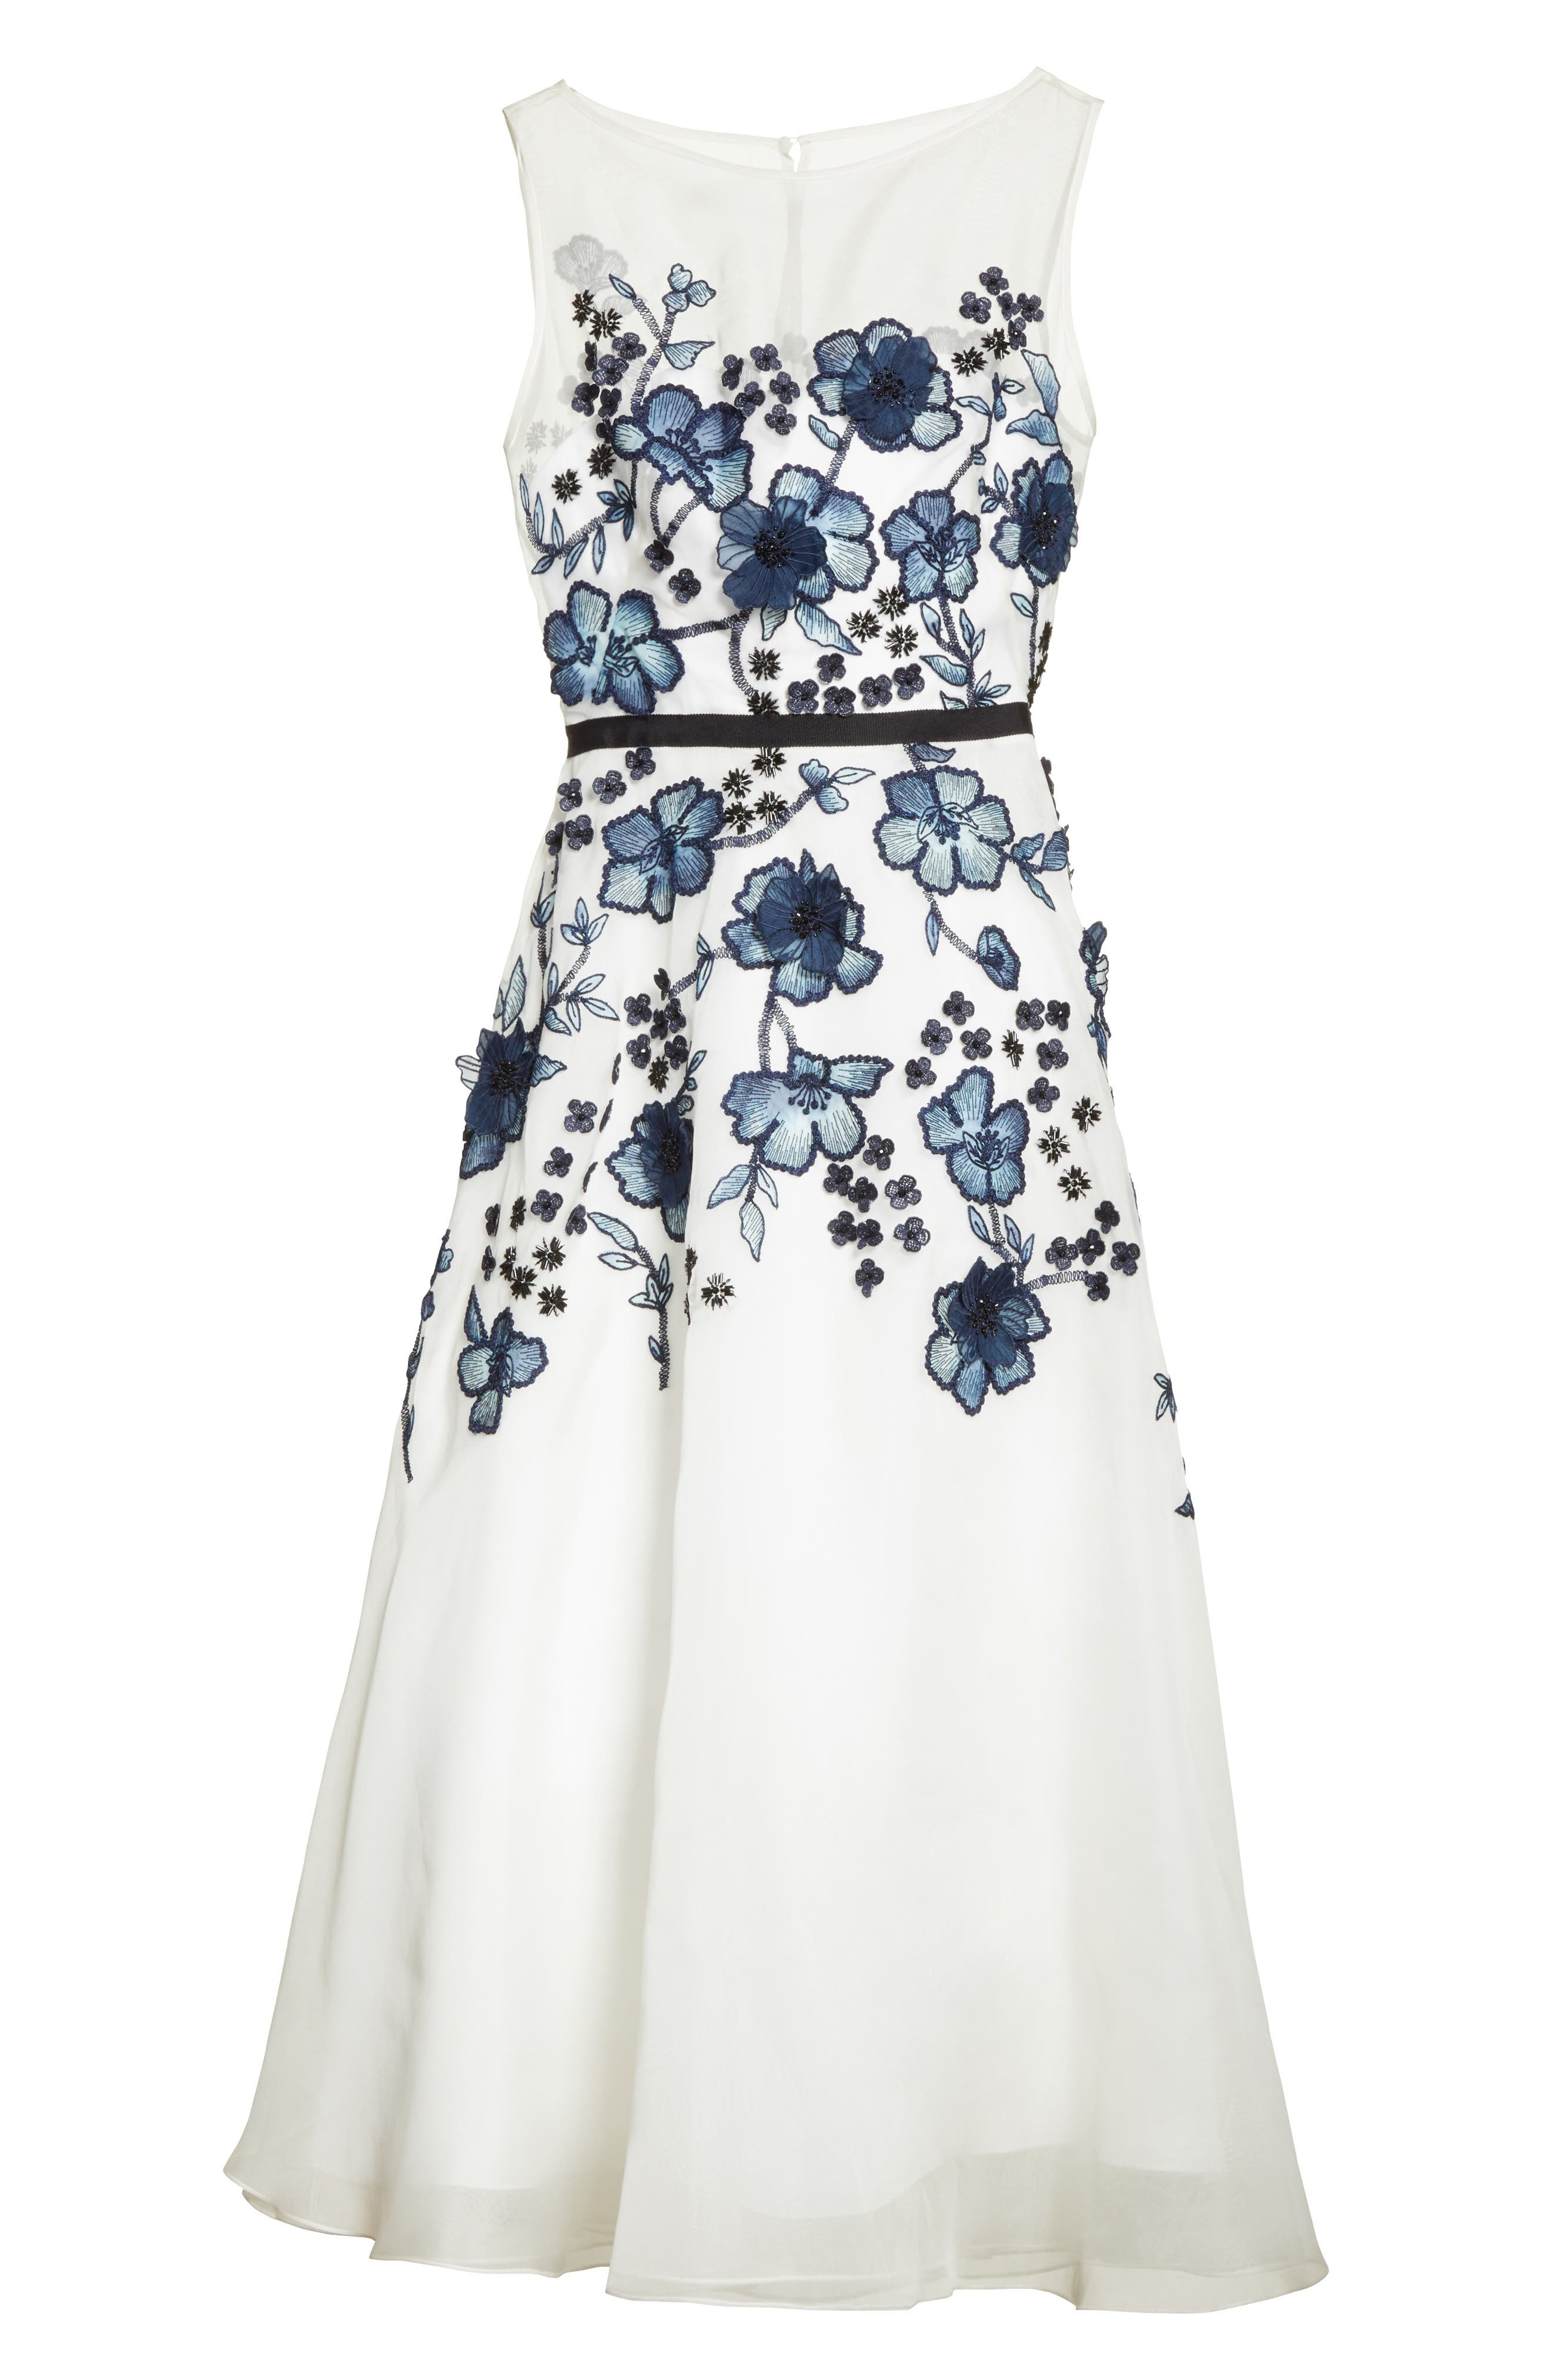 Floral Embroidered Dress,                             Alternate thumbnail 4, color,                             Navy/ Ivory